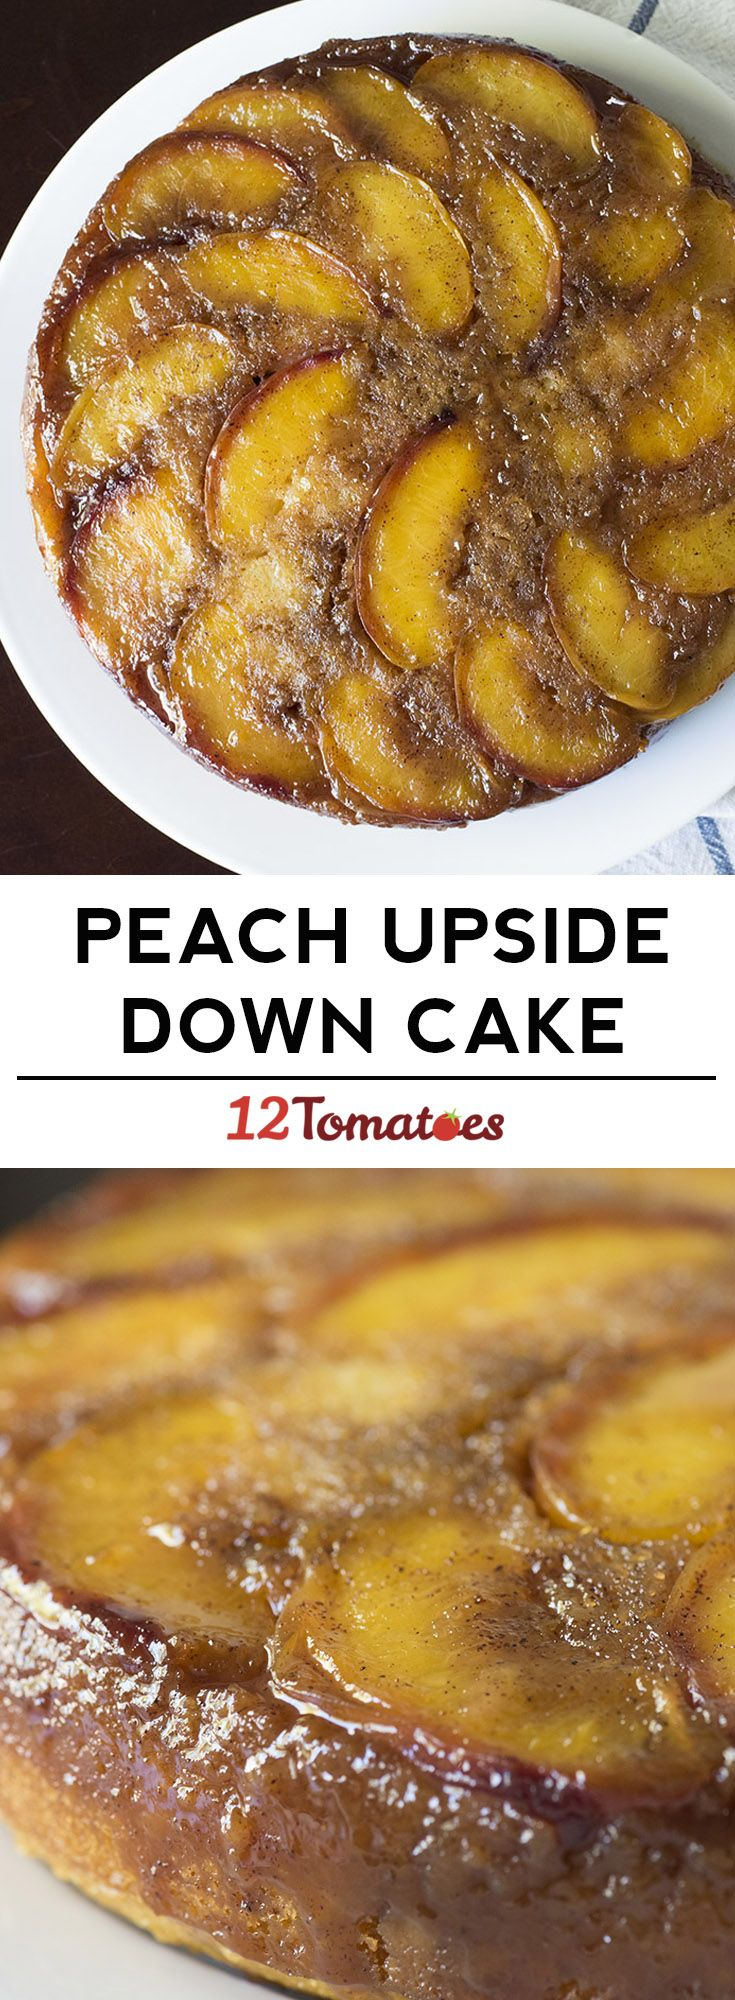 Peach upside down cake! One of our favorite coffee cakes.